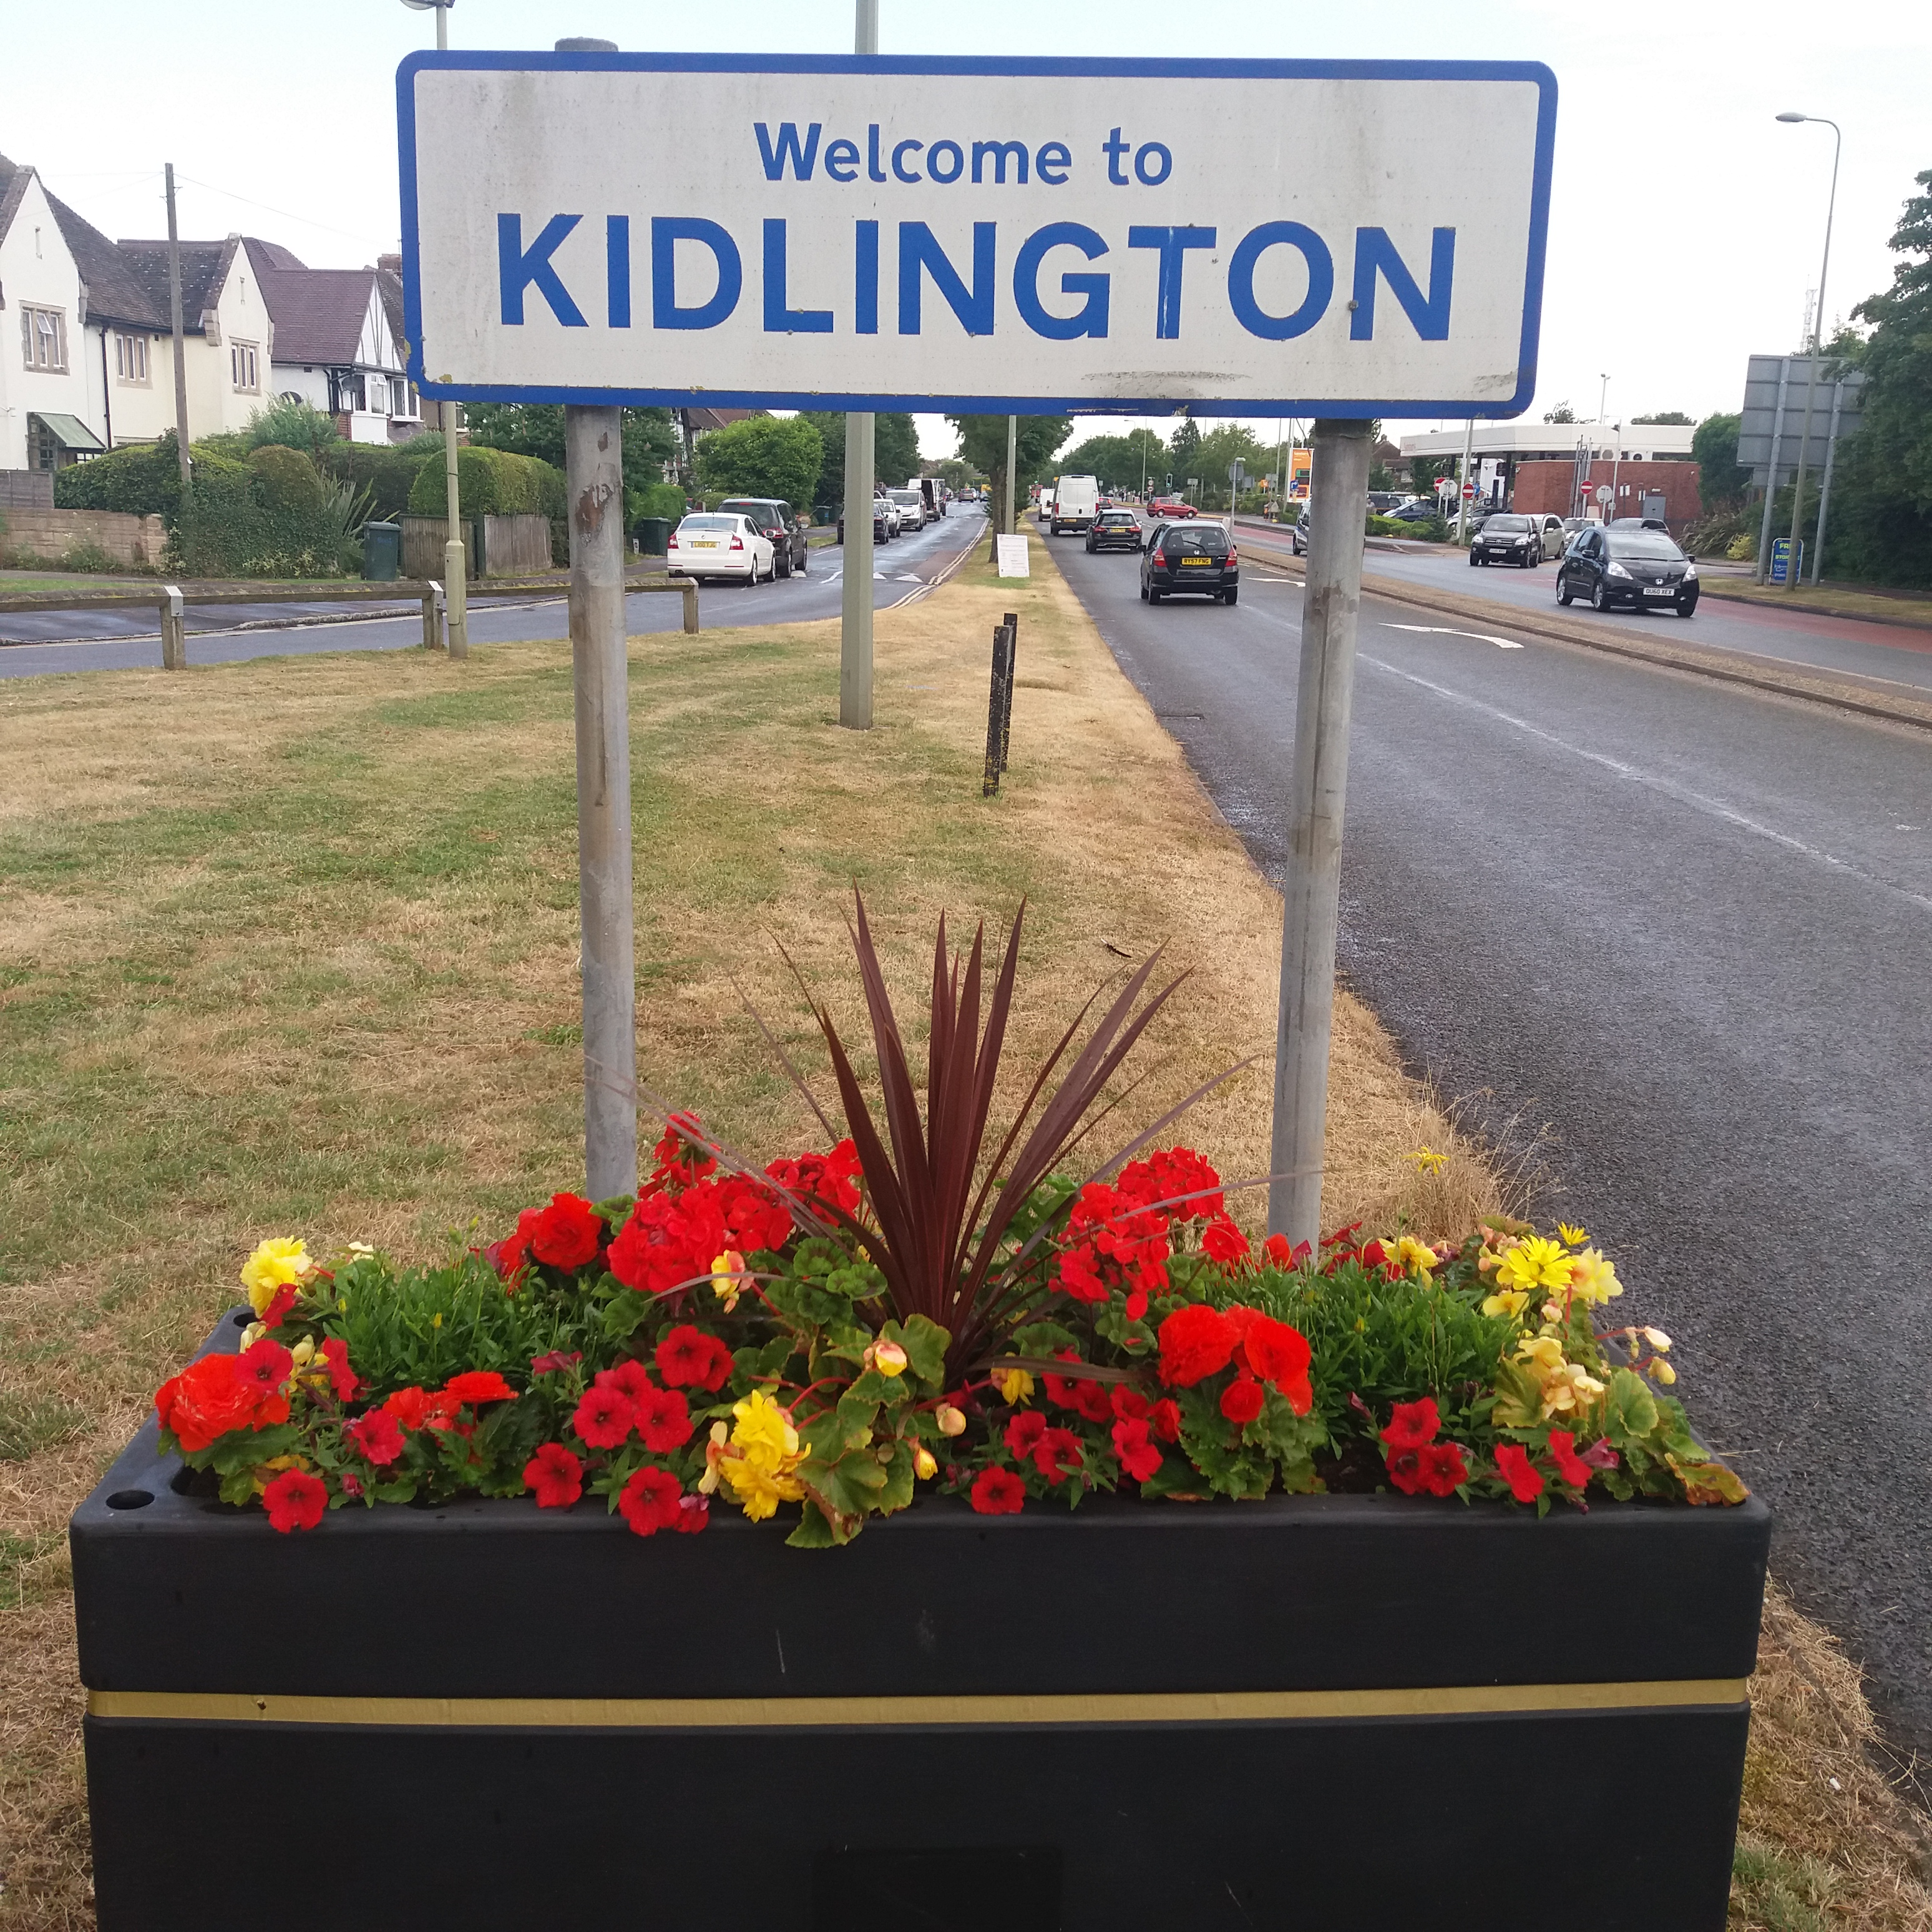 welcome to kidlington sign with flower baskets underneath